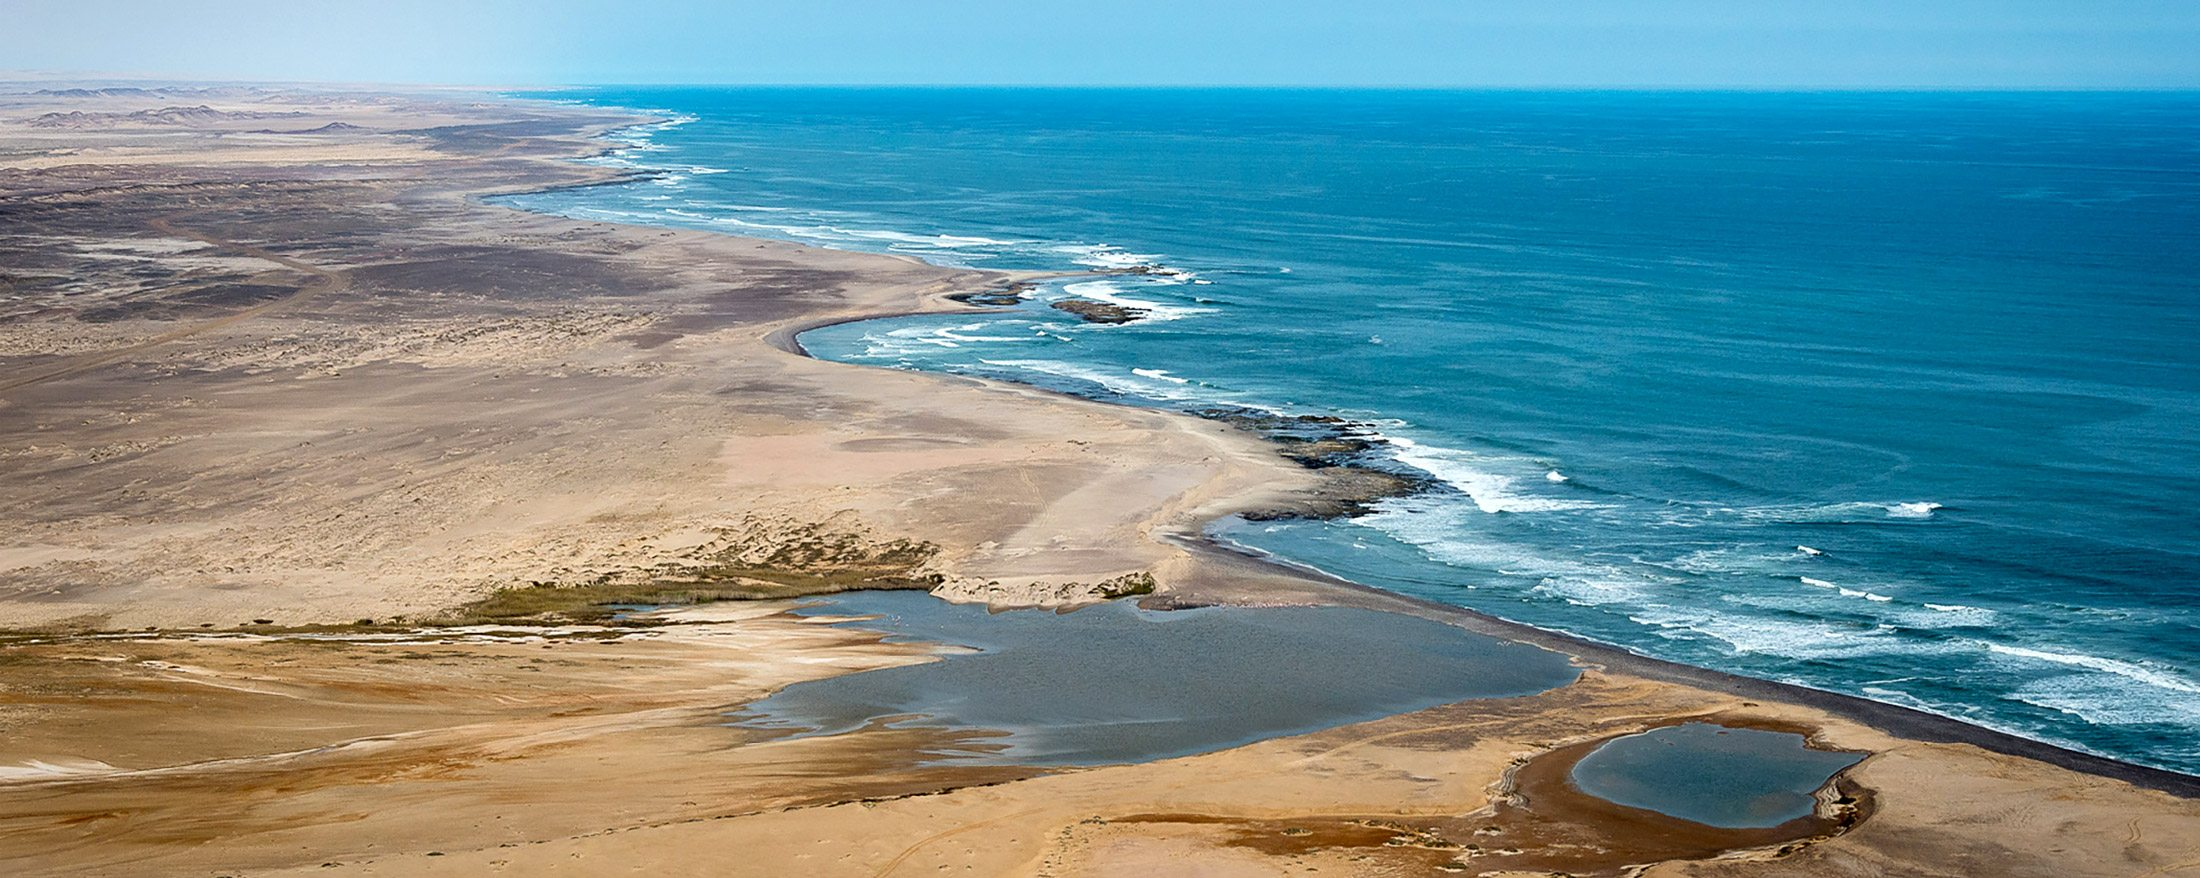 Hoanib Skeleton Coast is ideally located for a Skeleton Coast safari.